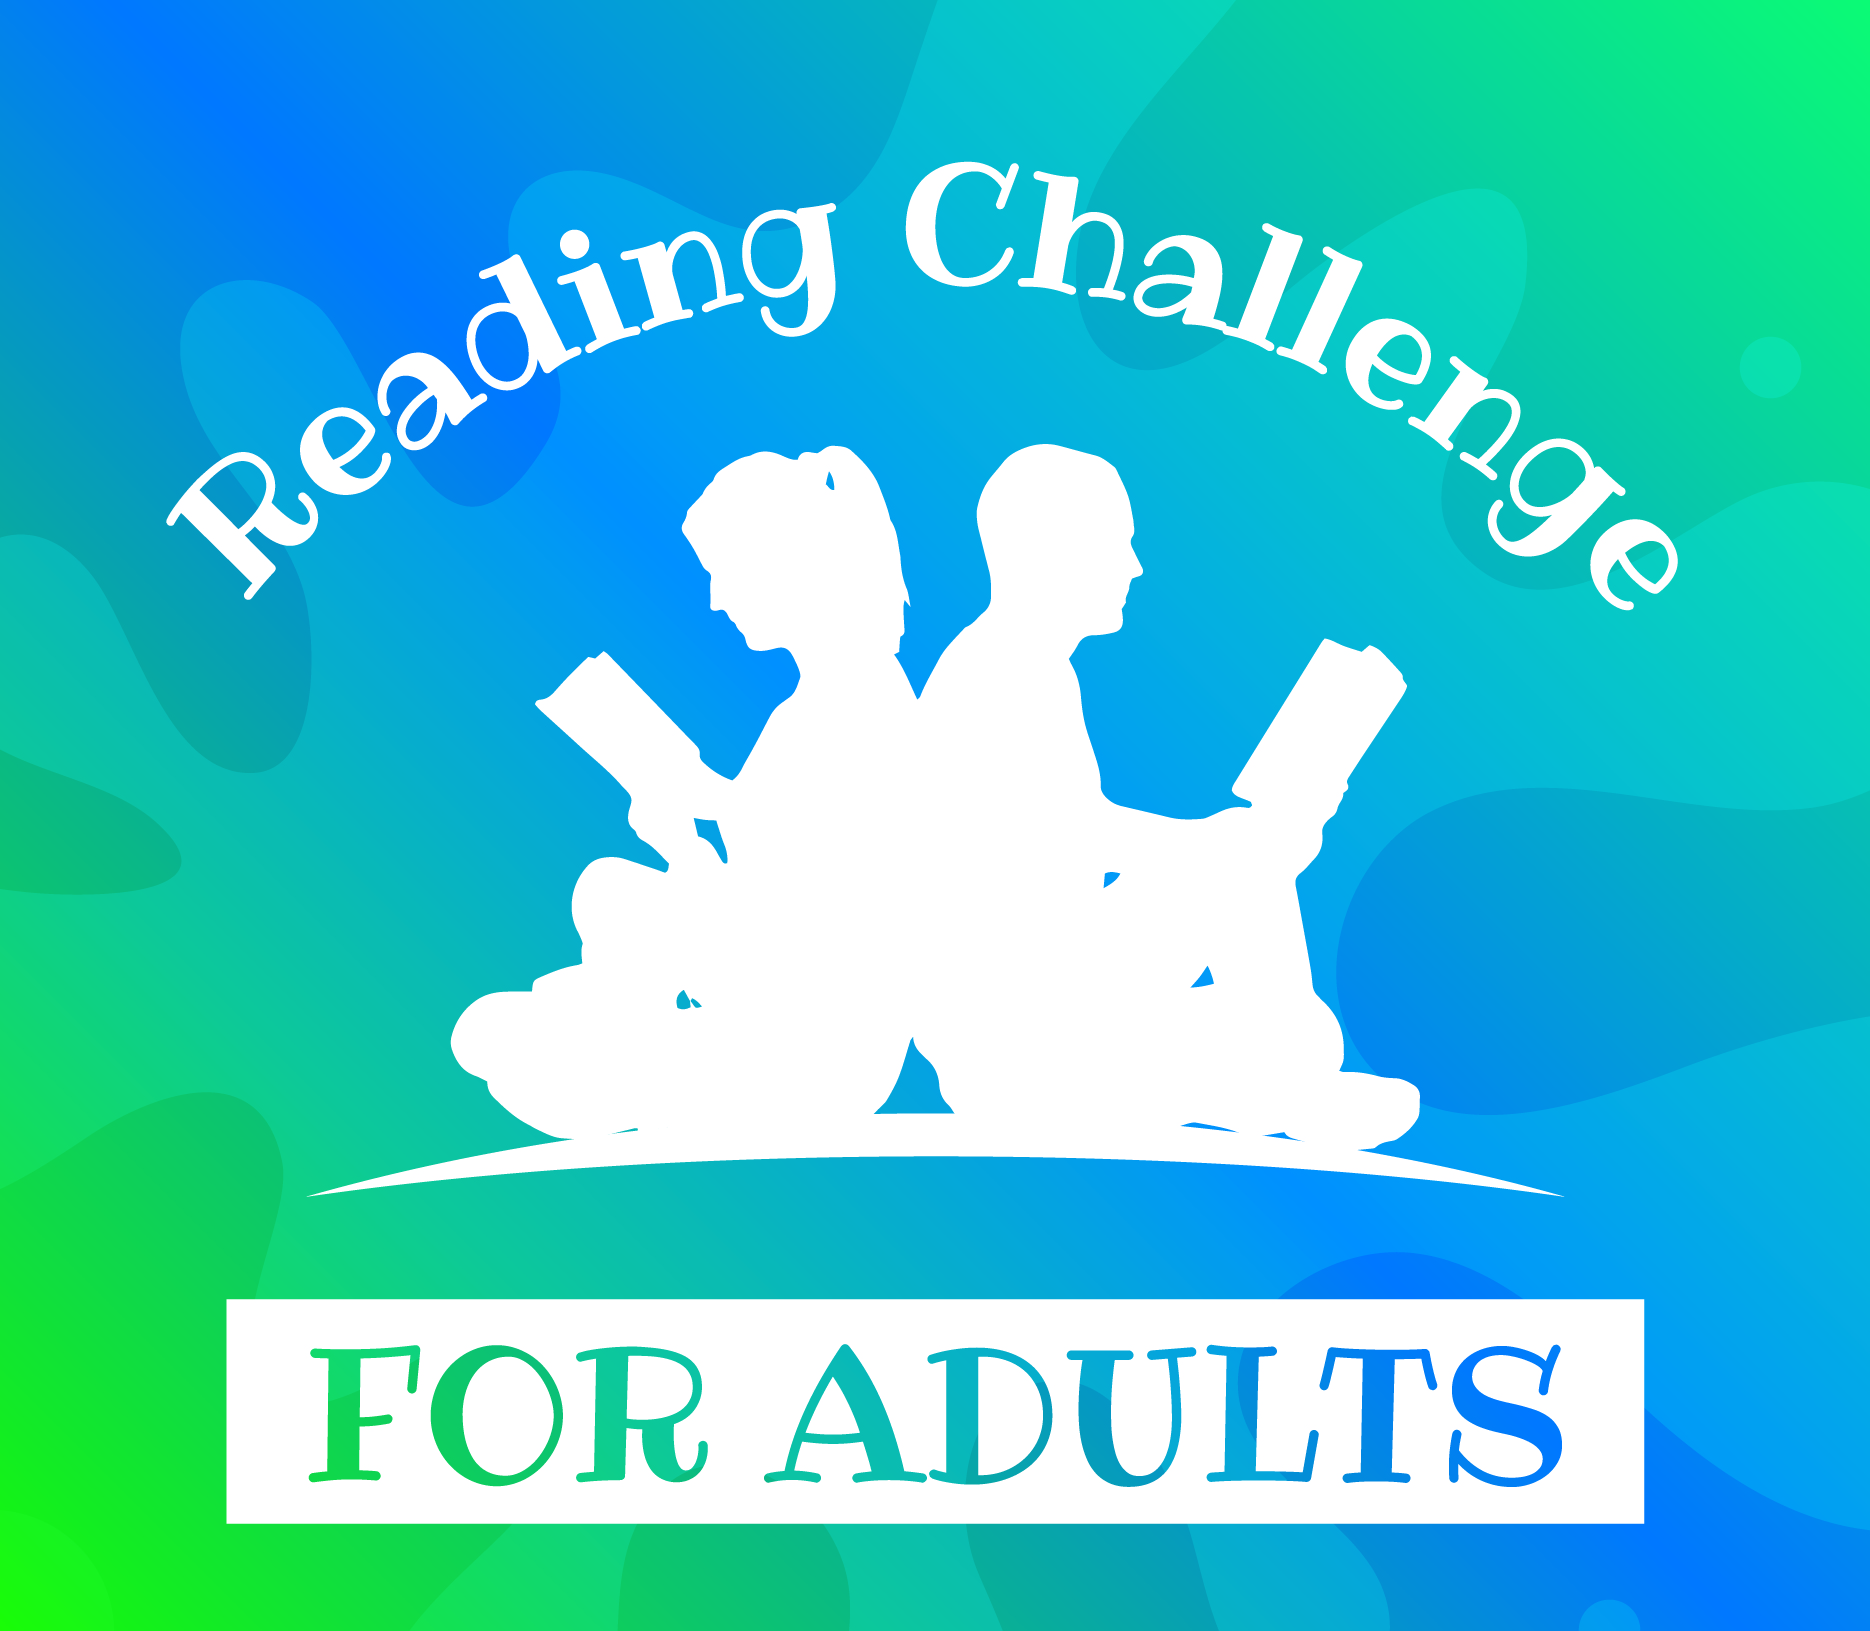 Reading Challenge Adults